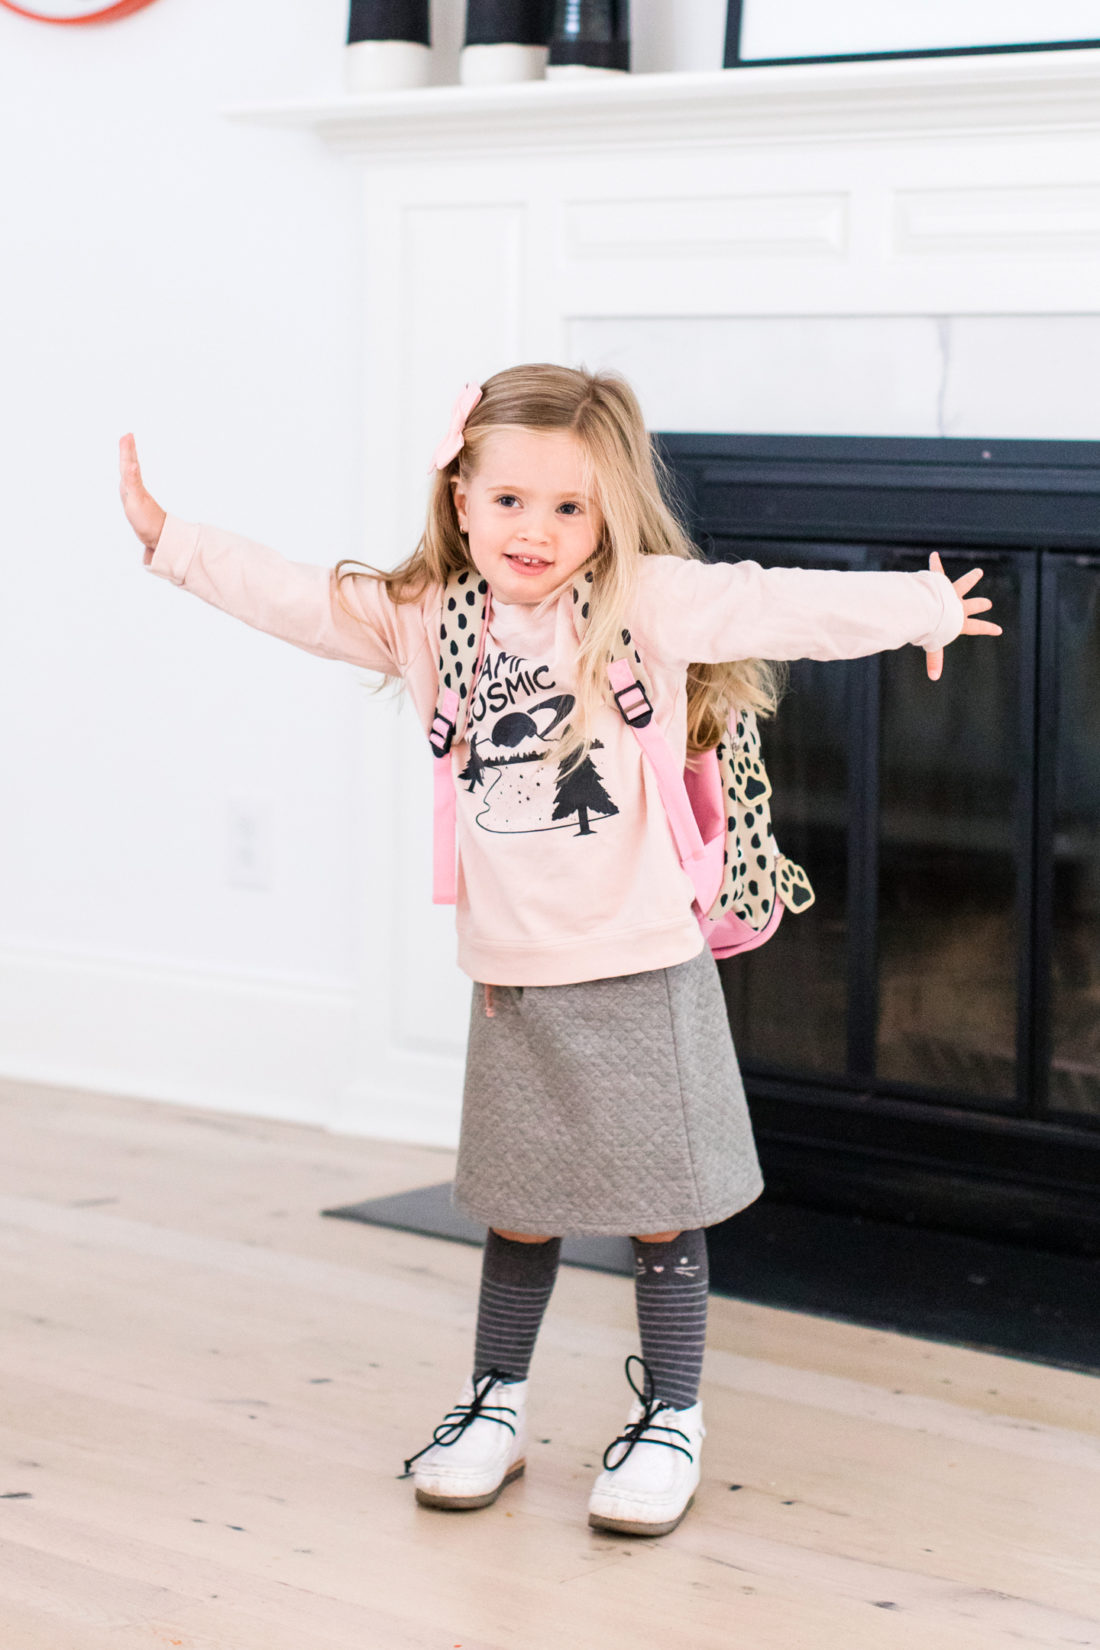 Marlowe Martino wears a pink sweatshirt and grey skirt with a pink bow in her hair, as she prepares to head off to the first day of Preschool